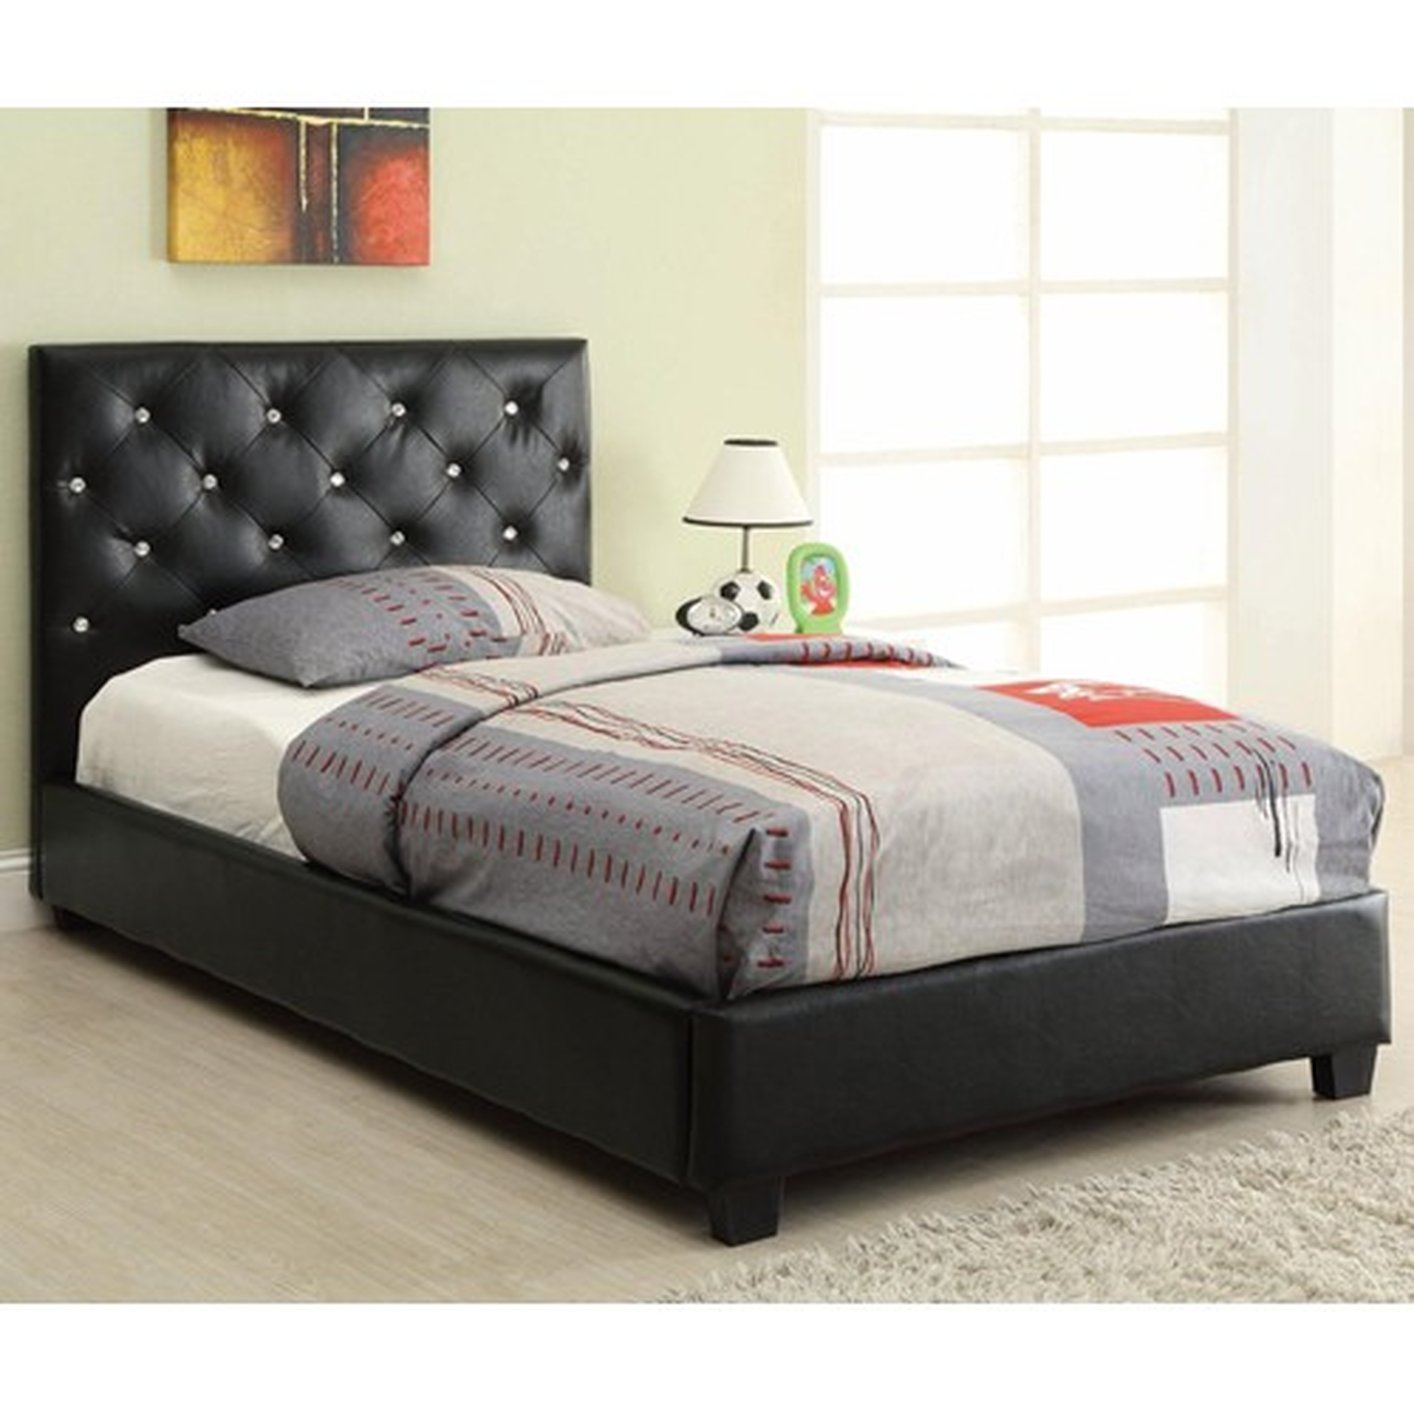 Coaster 300391t black twin size leather bed steal a sofa furniture outlet los angeles ca Mattress twin size